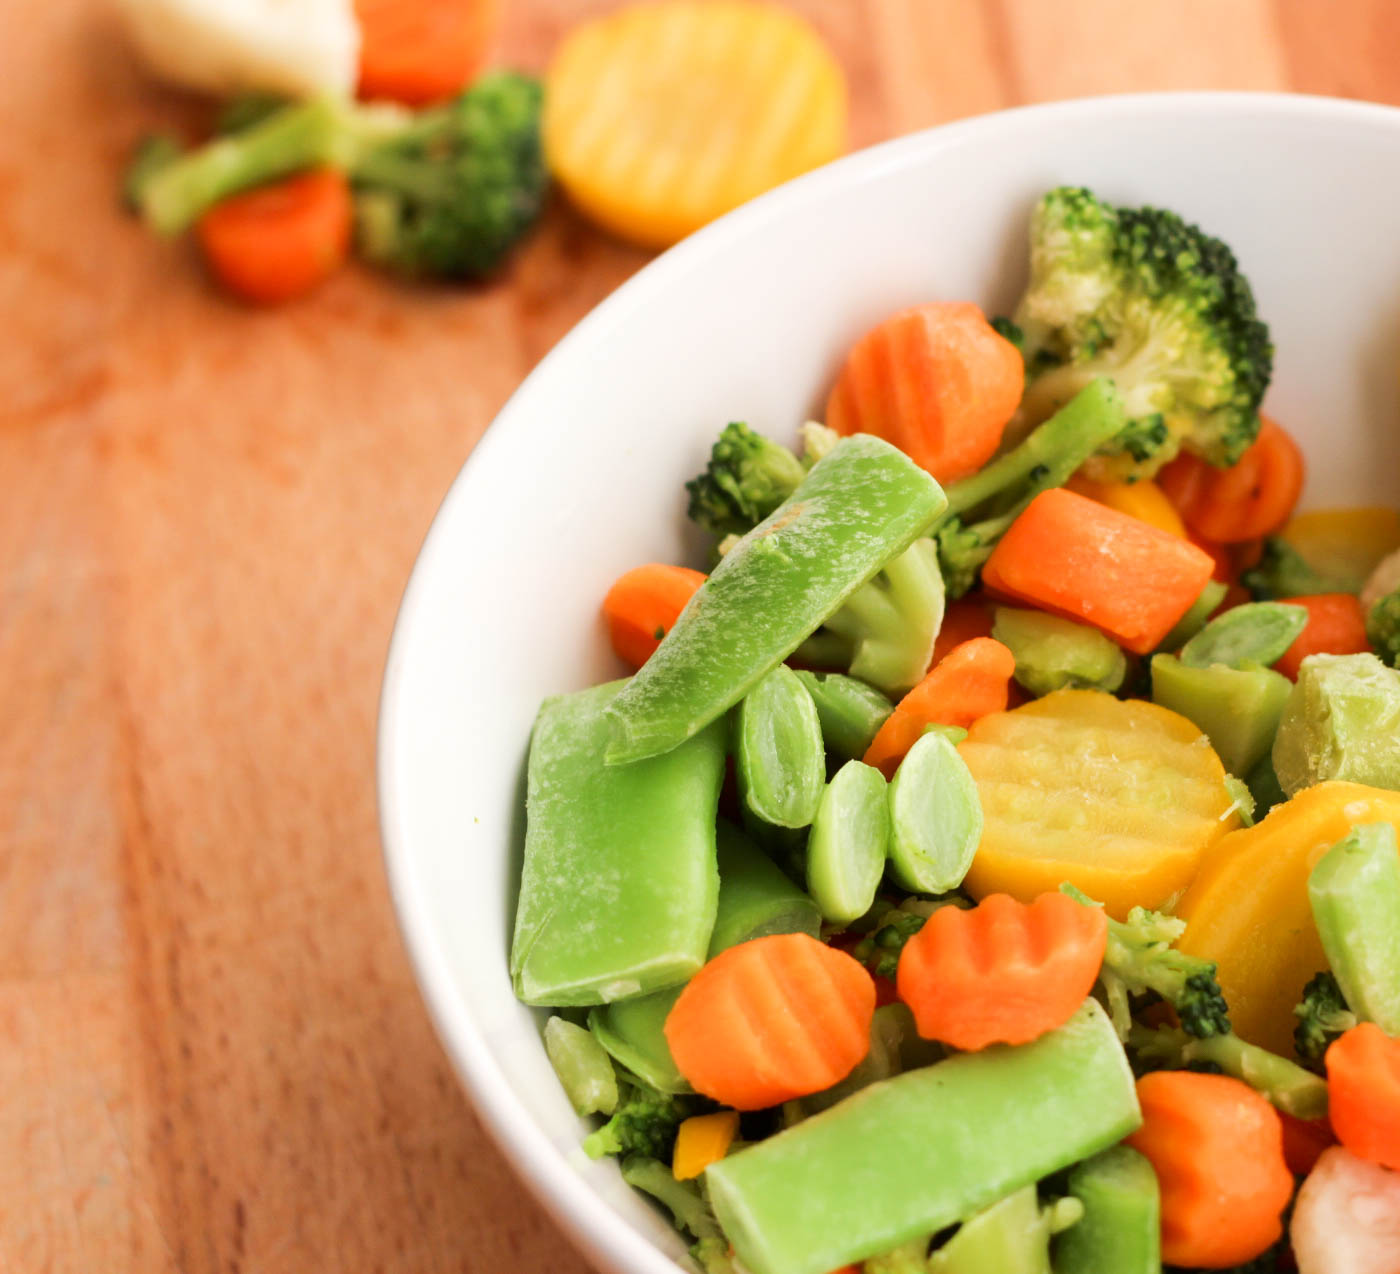 steamed-veggies-6-tips-for-healthy-eating-out